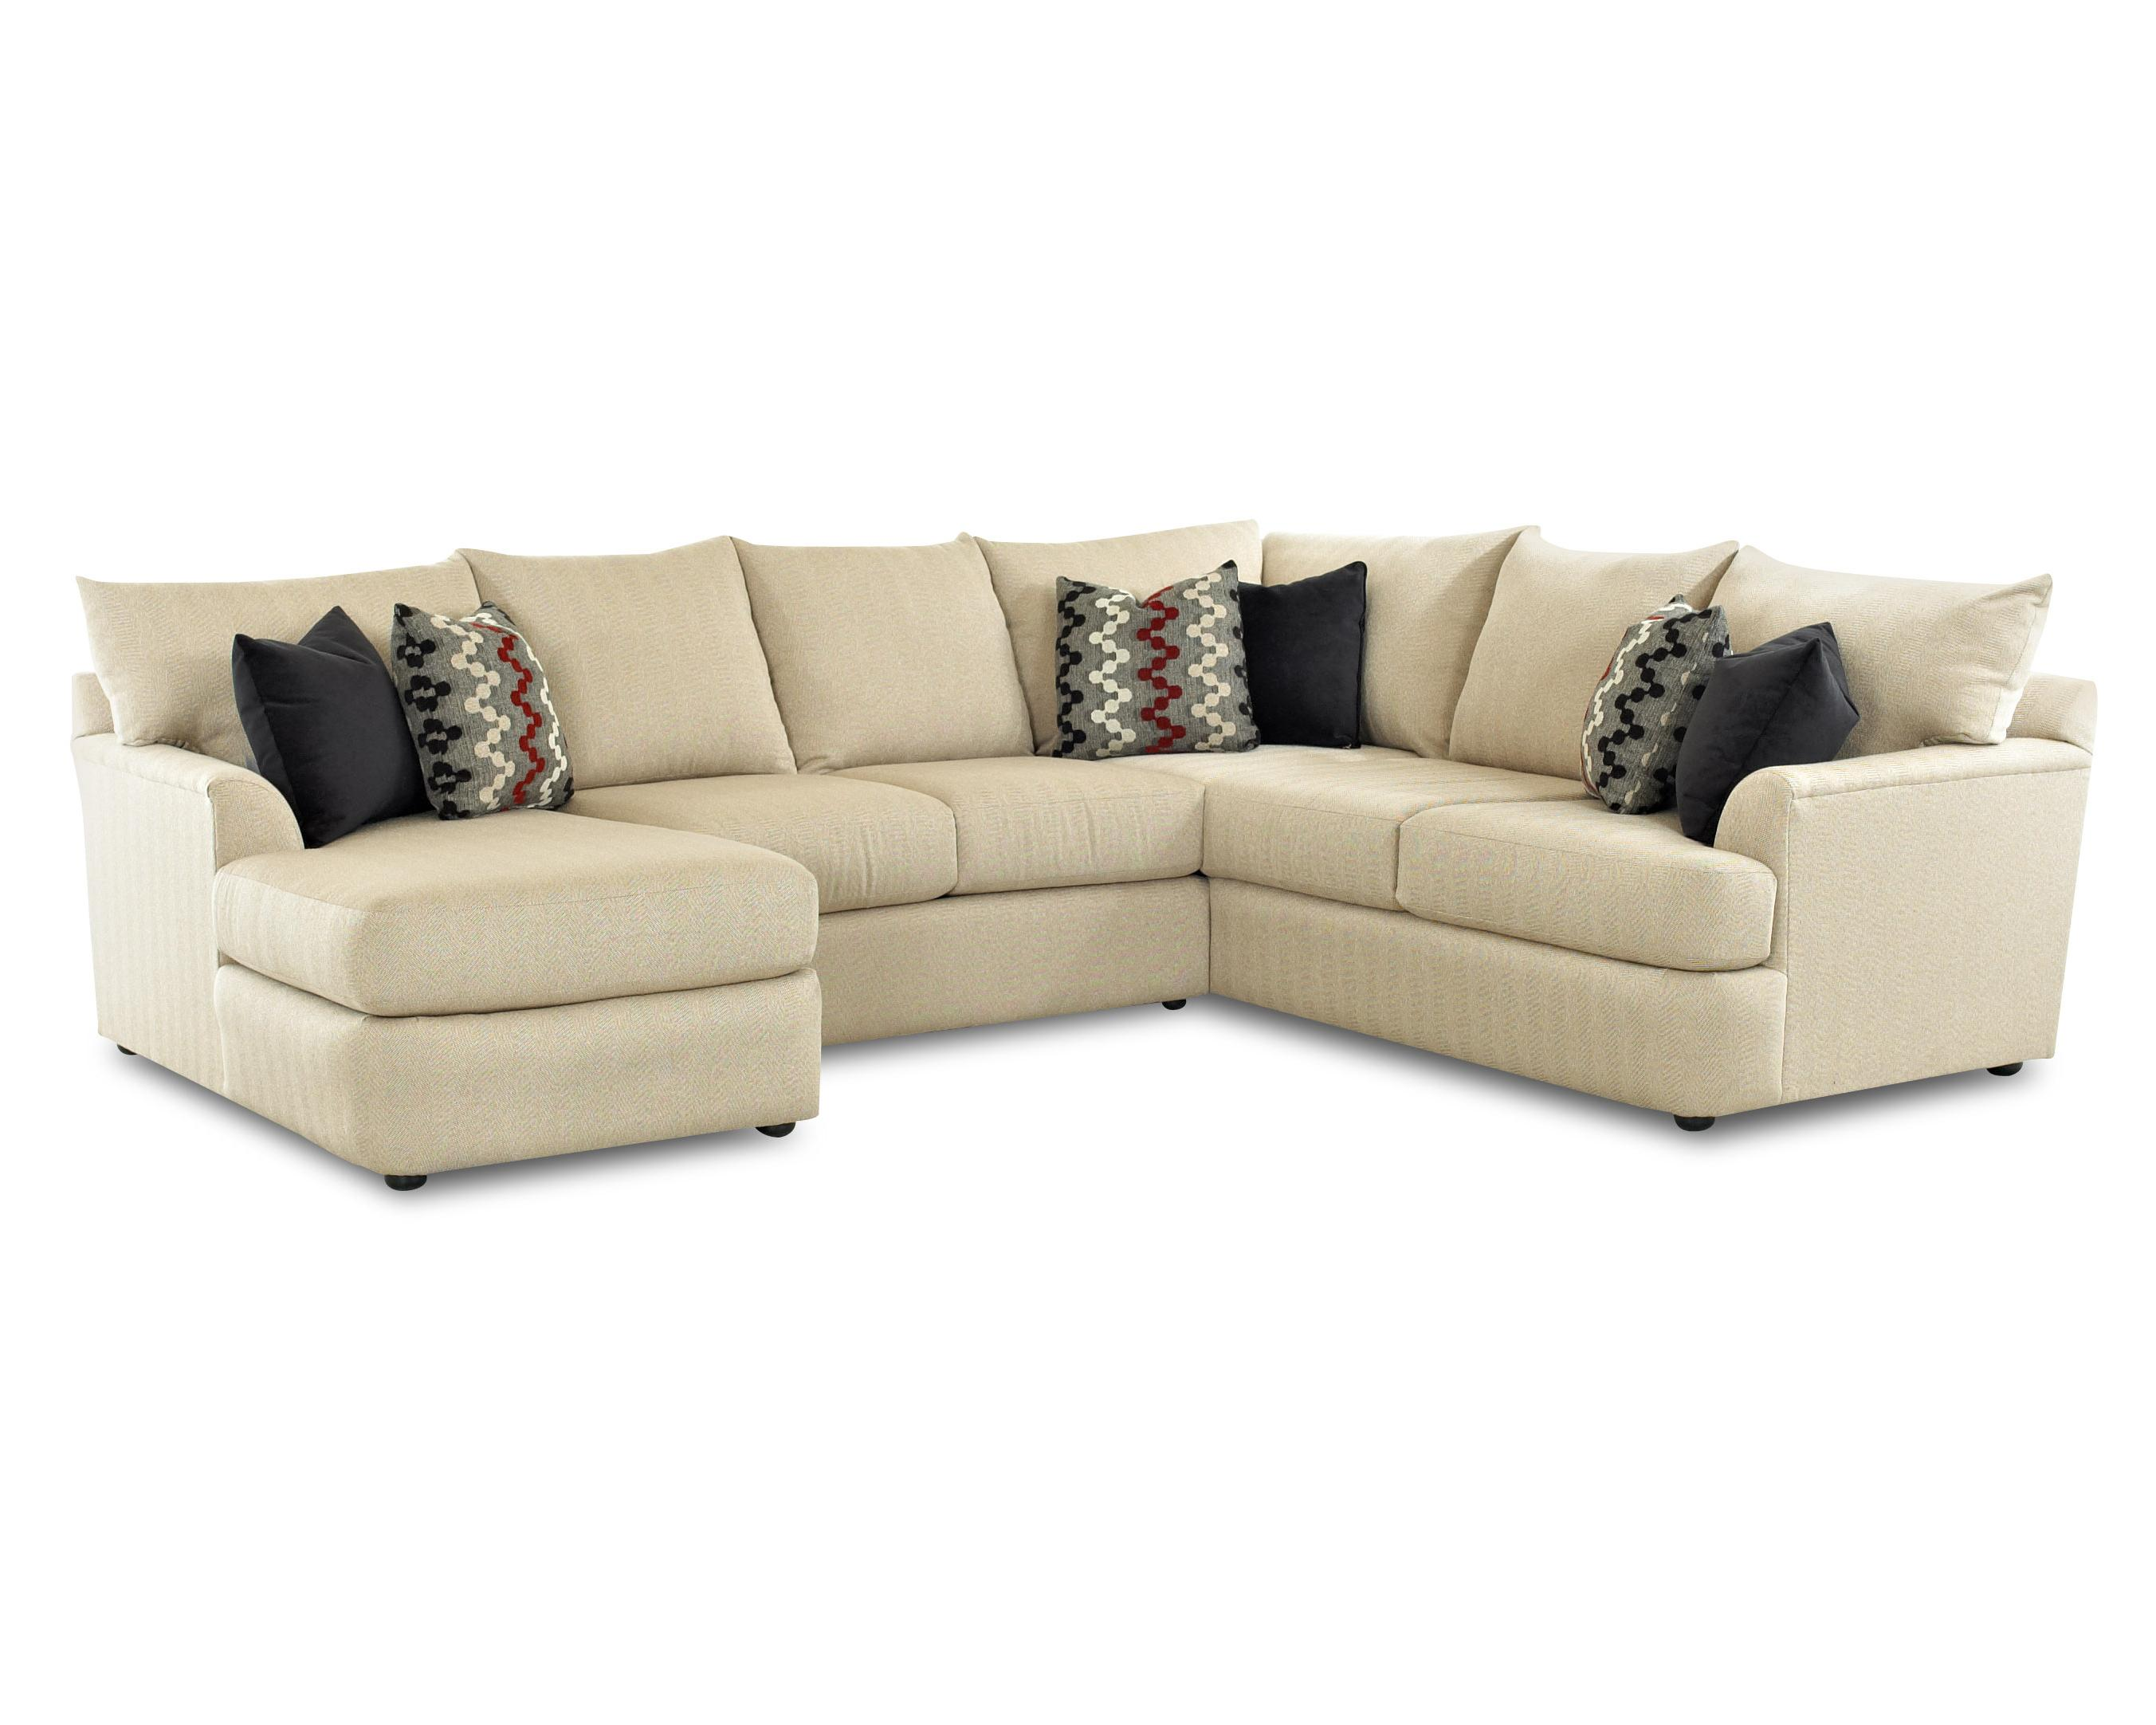 Sectional sofa with left side chaise lounger by klaussner for Sectional sofas wolf furniture